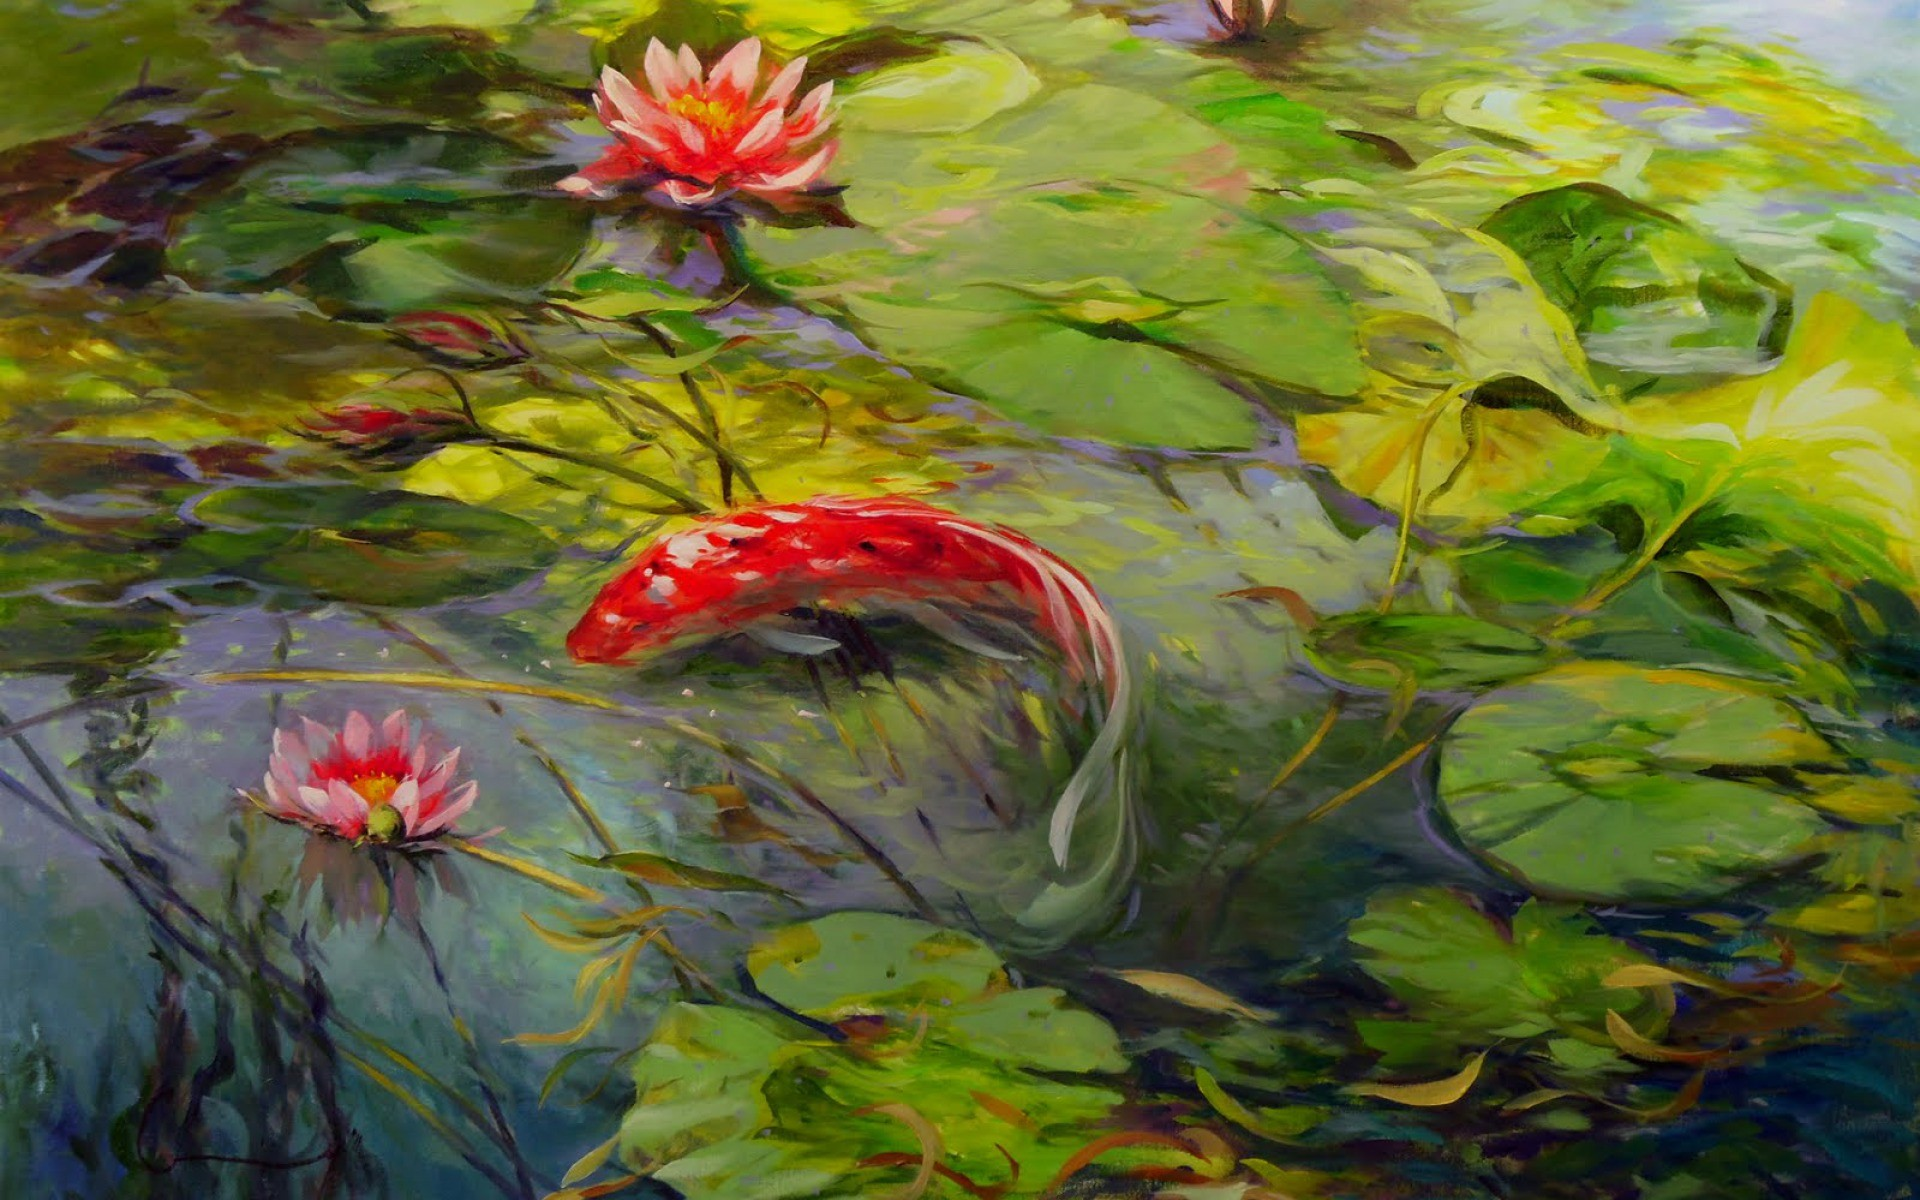 1920x1200 Lovely Koi Lily Pond wallpapers | Lovely Koi Lily Pond stock photos